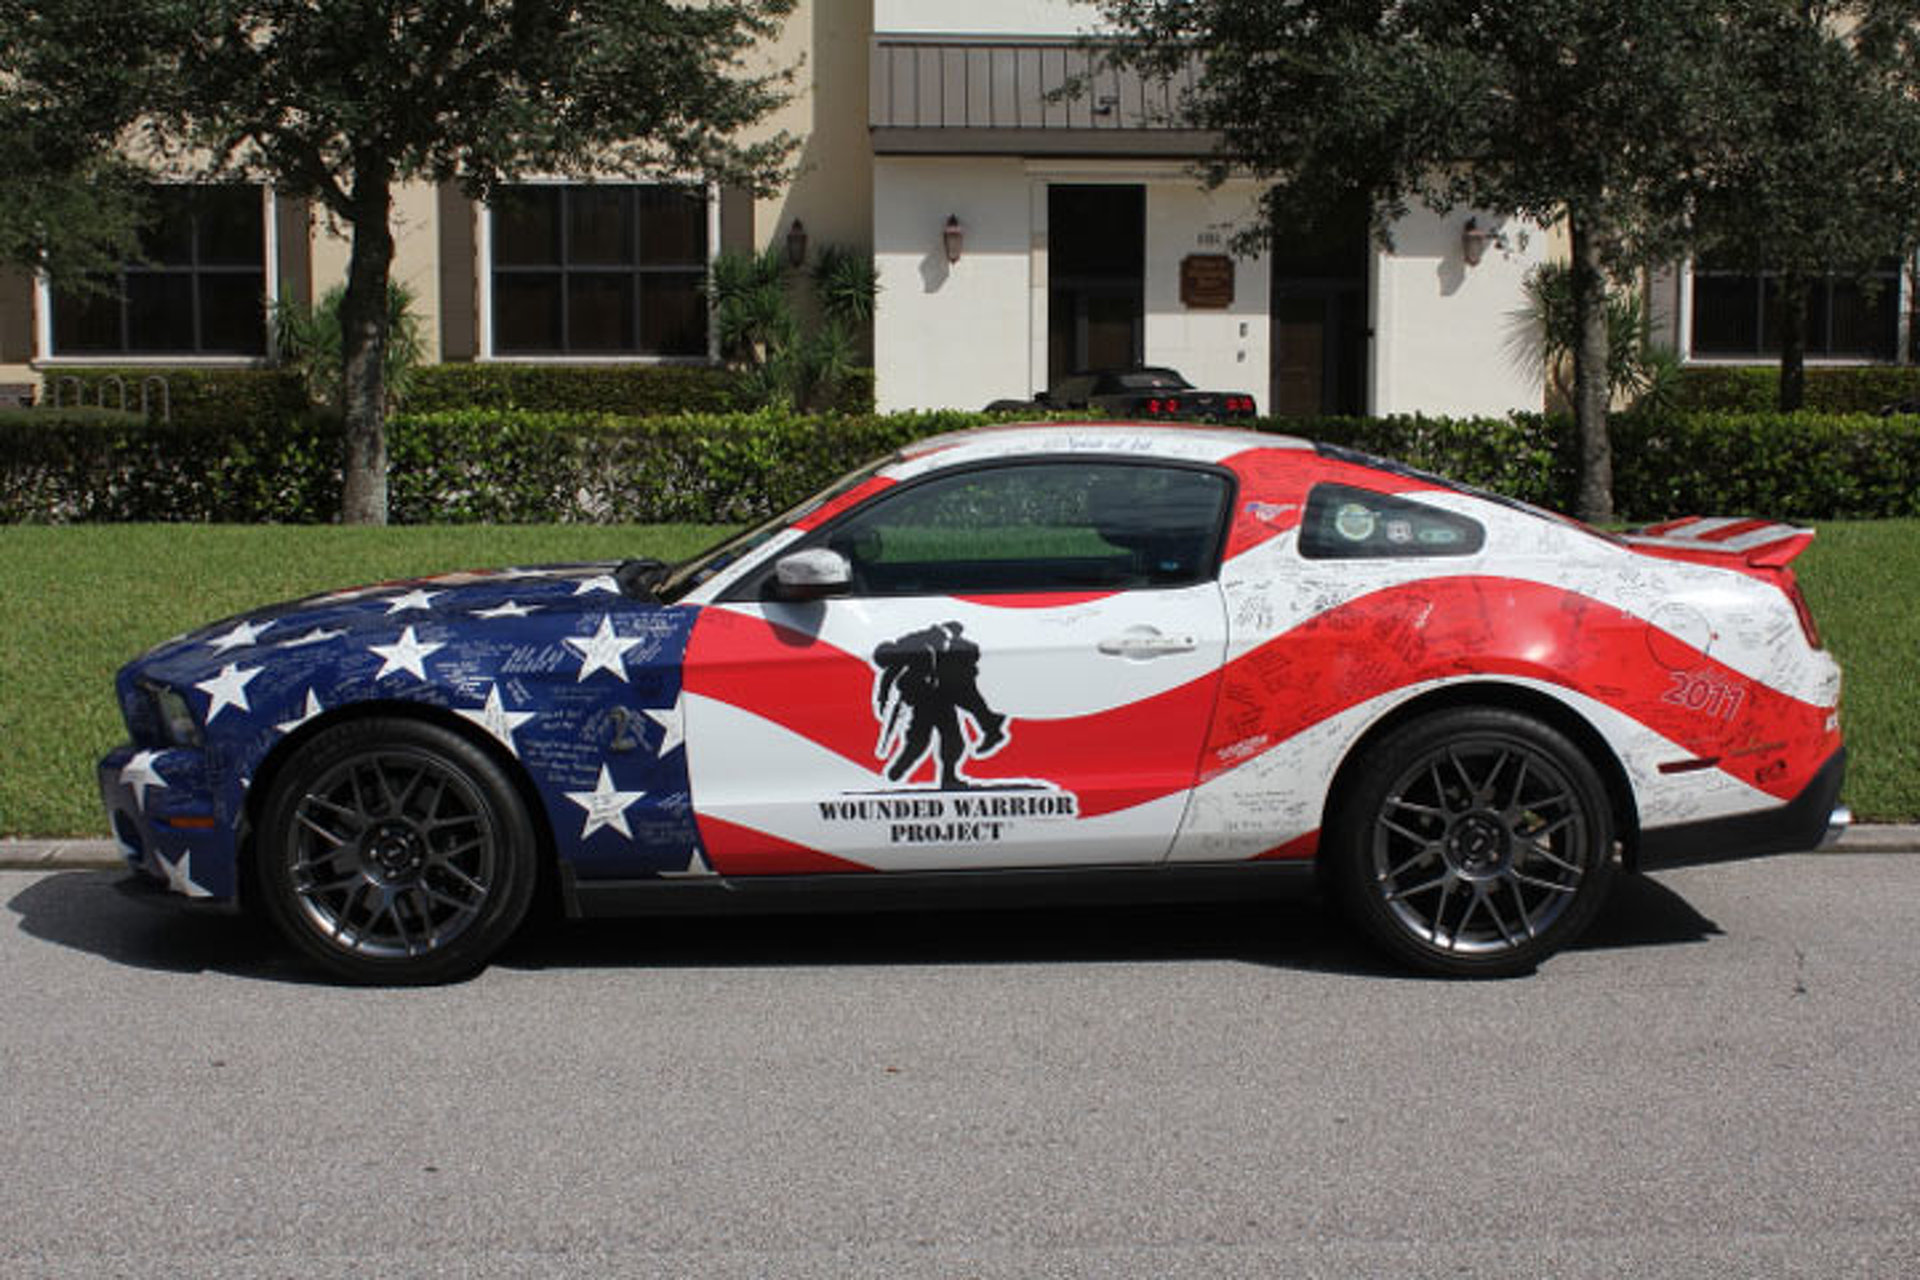 This Shelby GT500 Goes Big for Wounded Warrior Project